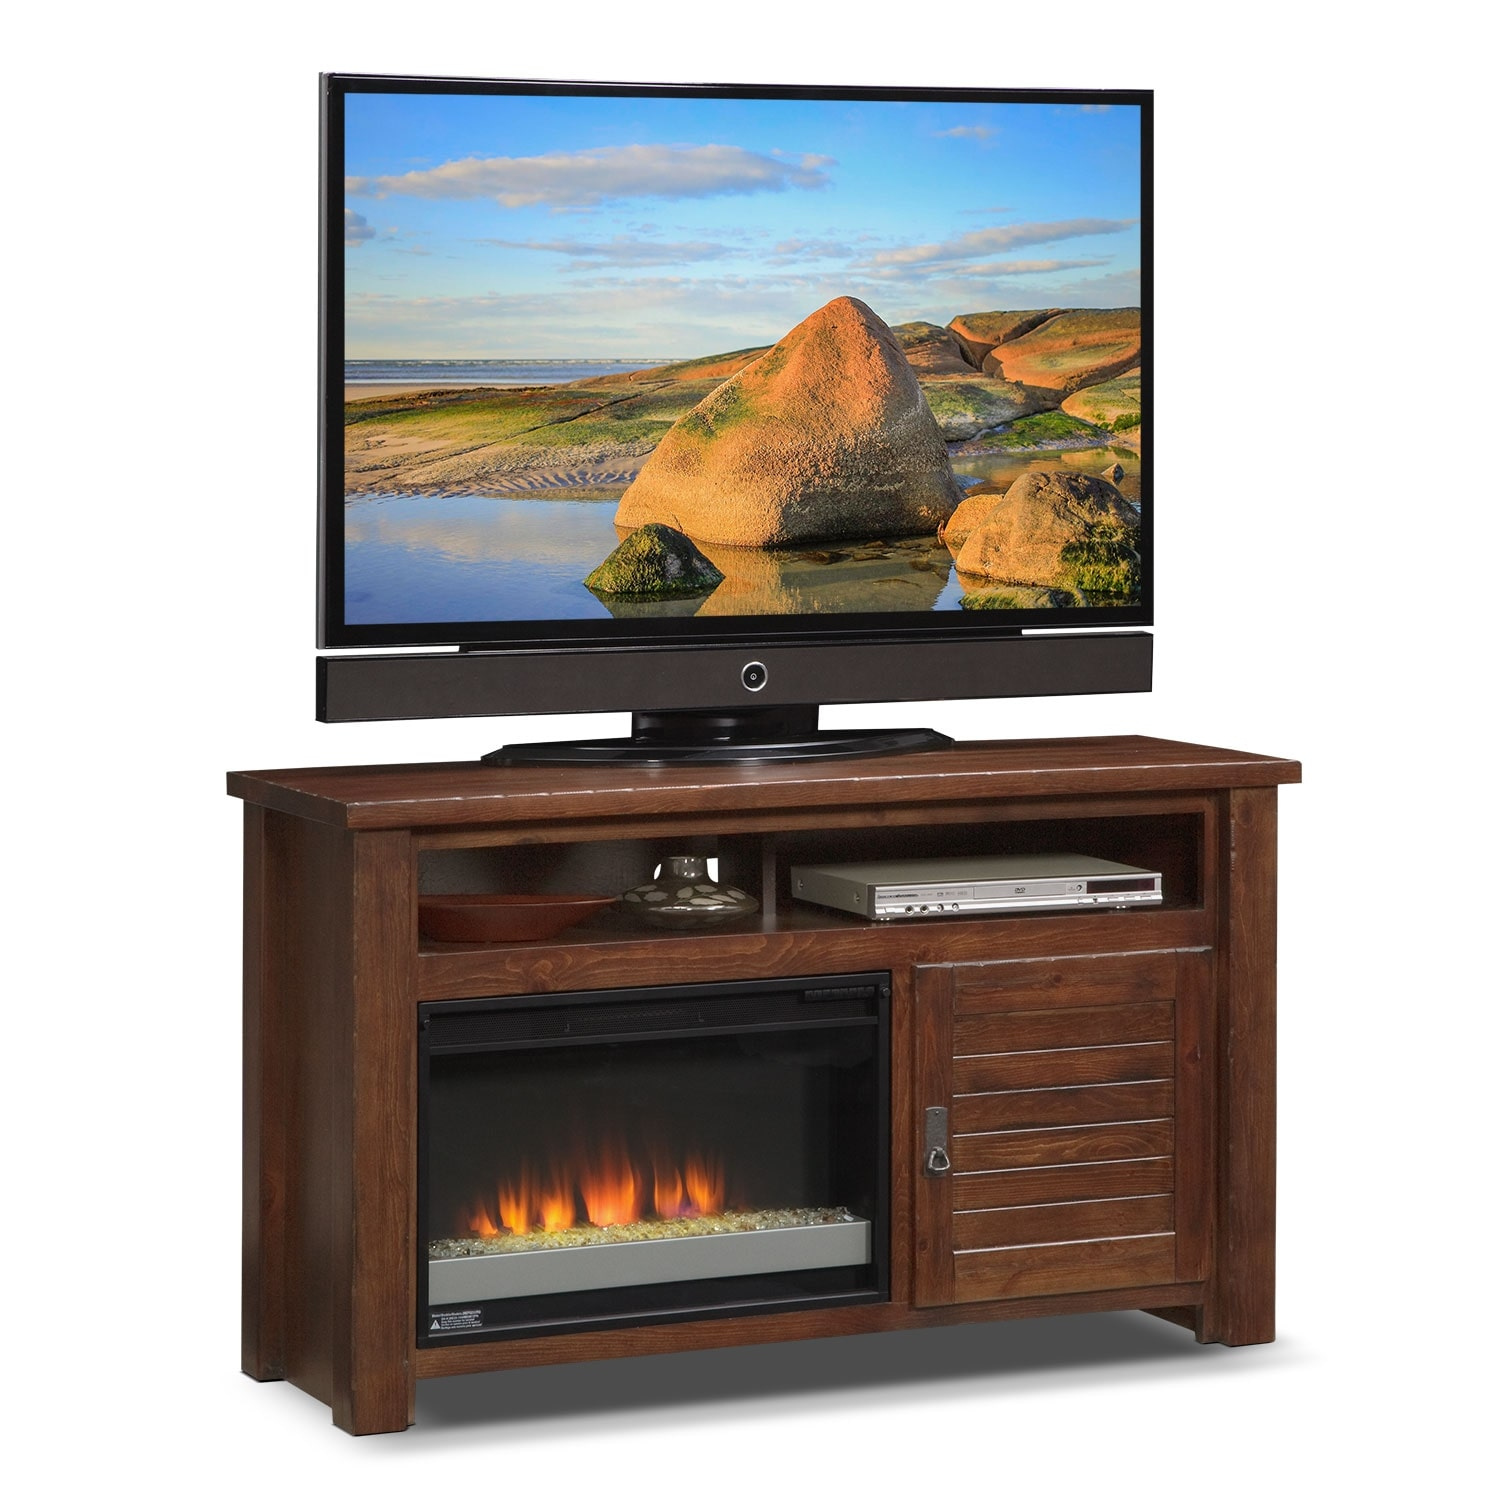 Prairie 54 Fireplace Tv Stand With Contemporary Insert Mesquite Pine Value City Furniture